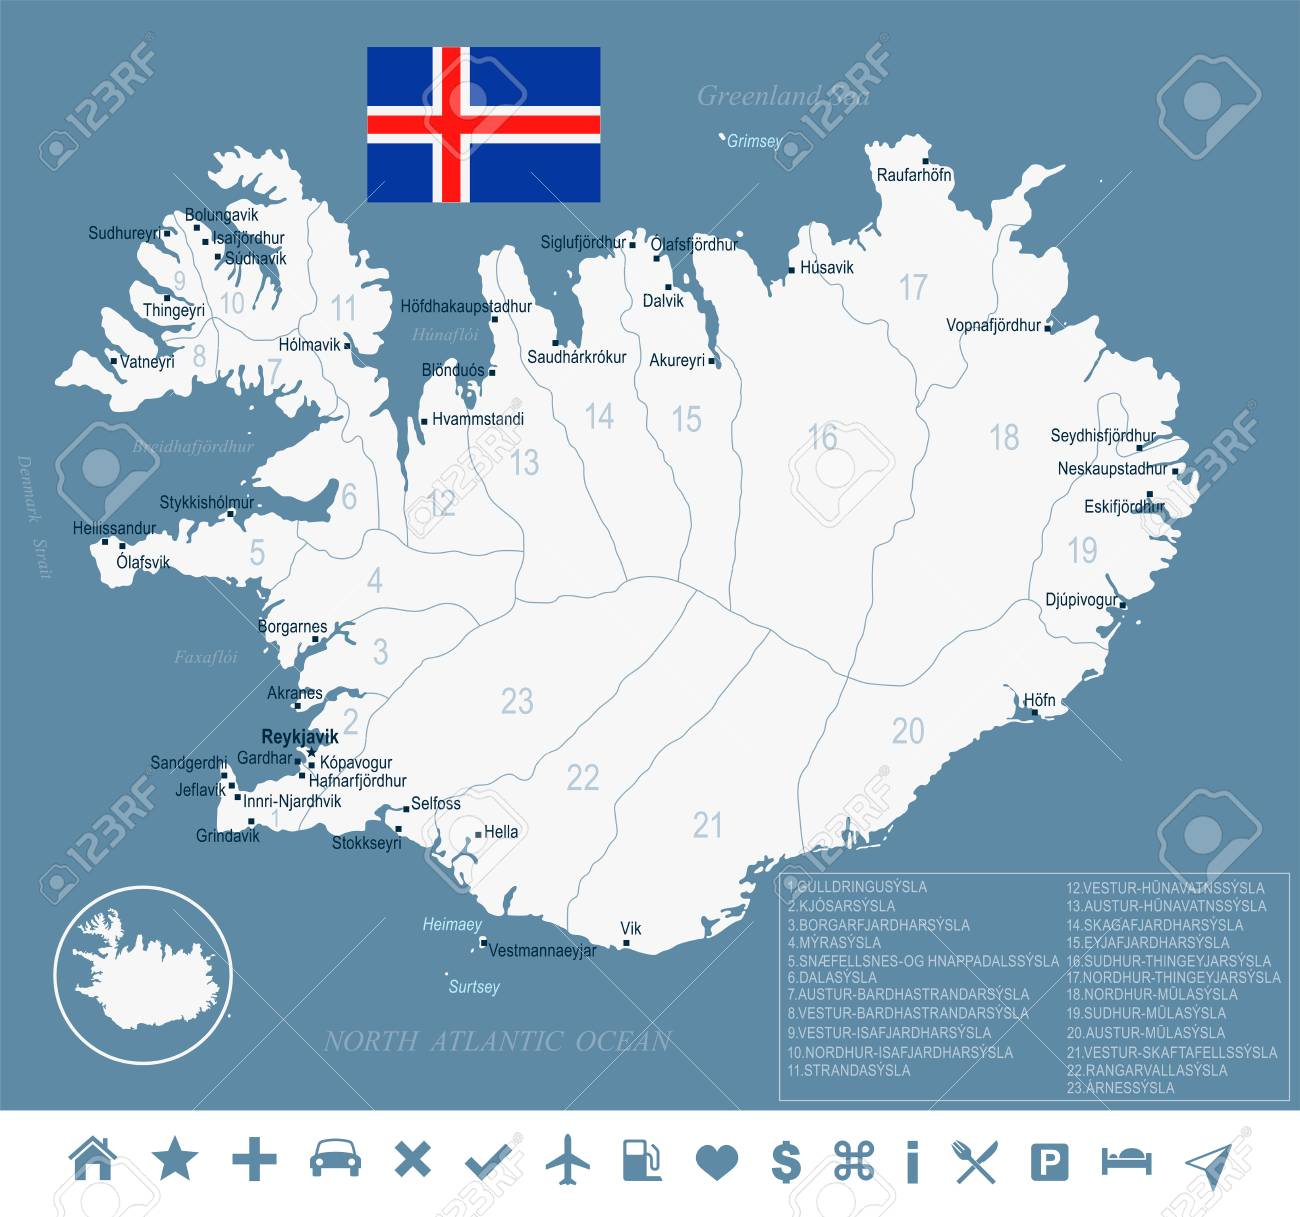 Iceland Map And Flag - High Detailed Vector Illustration Royalty ...